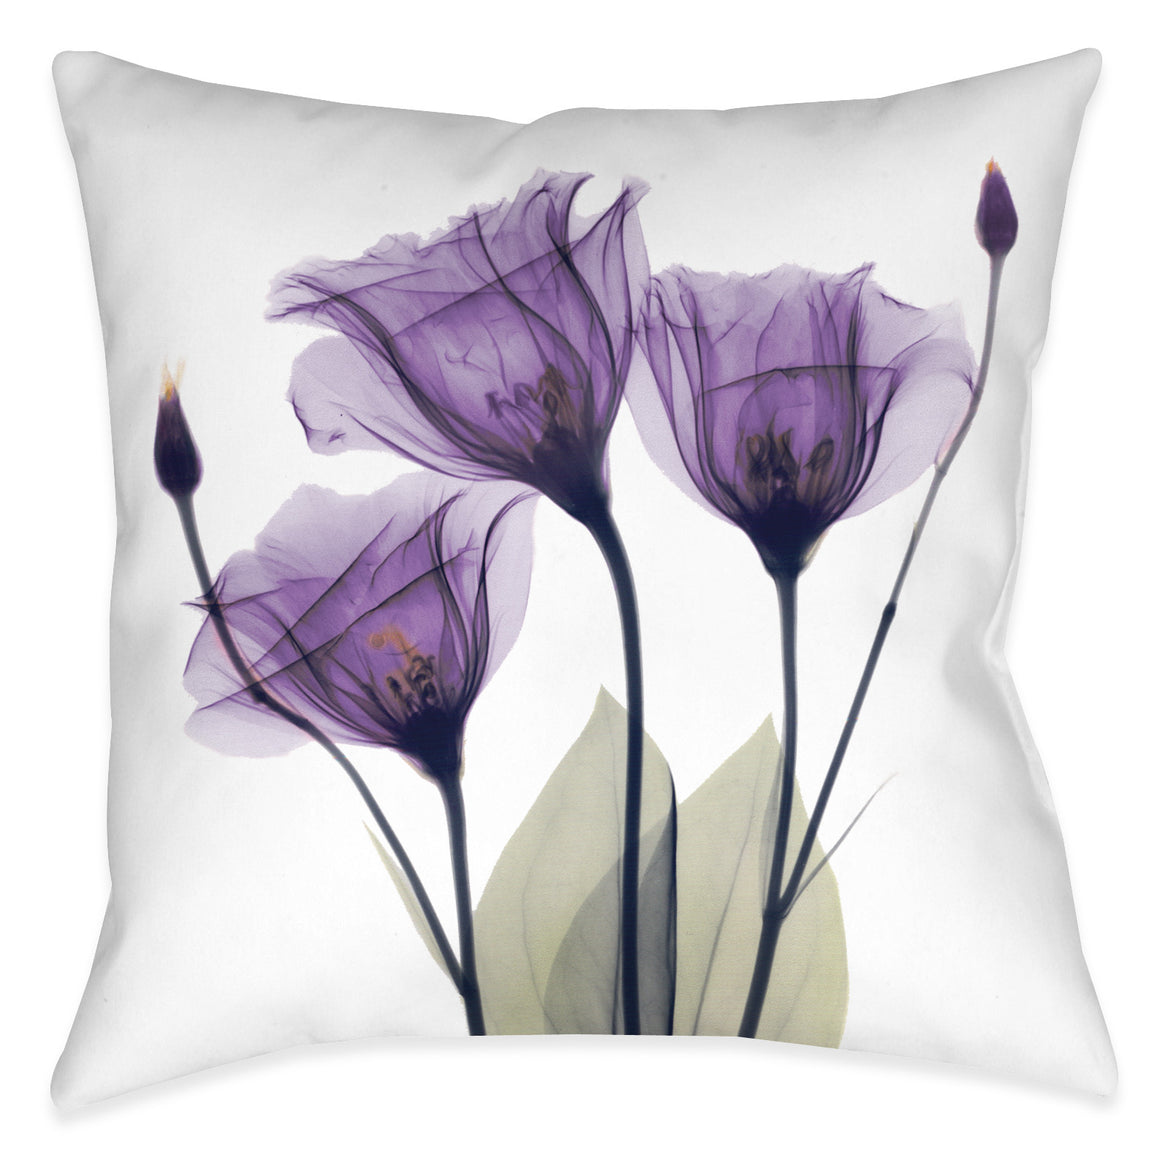 Gentian Hope Outdoor Decorative Pillow